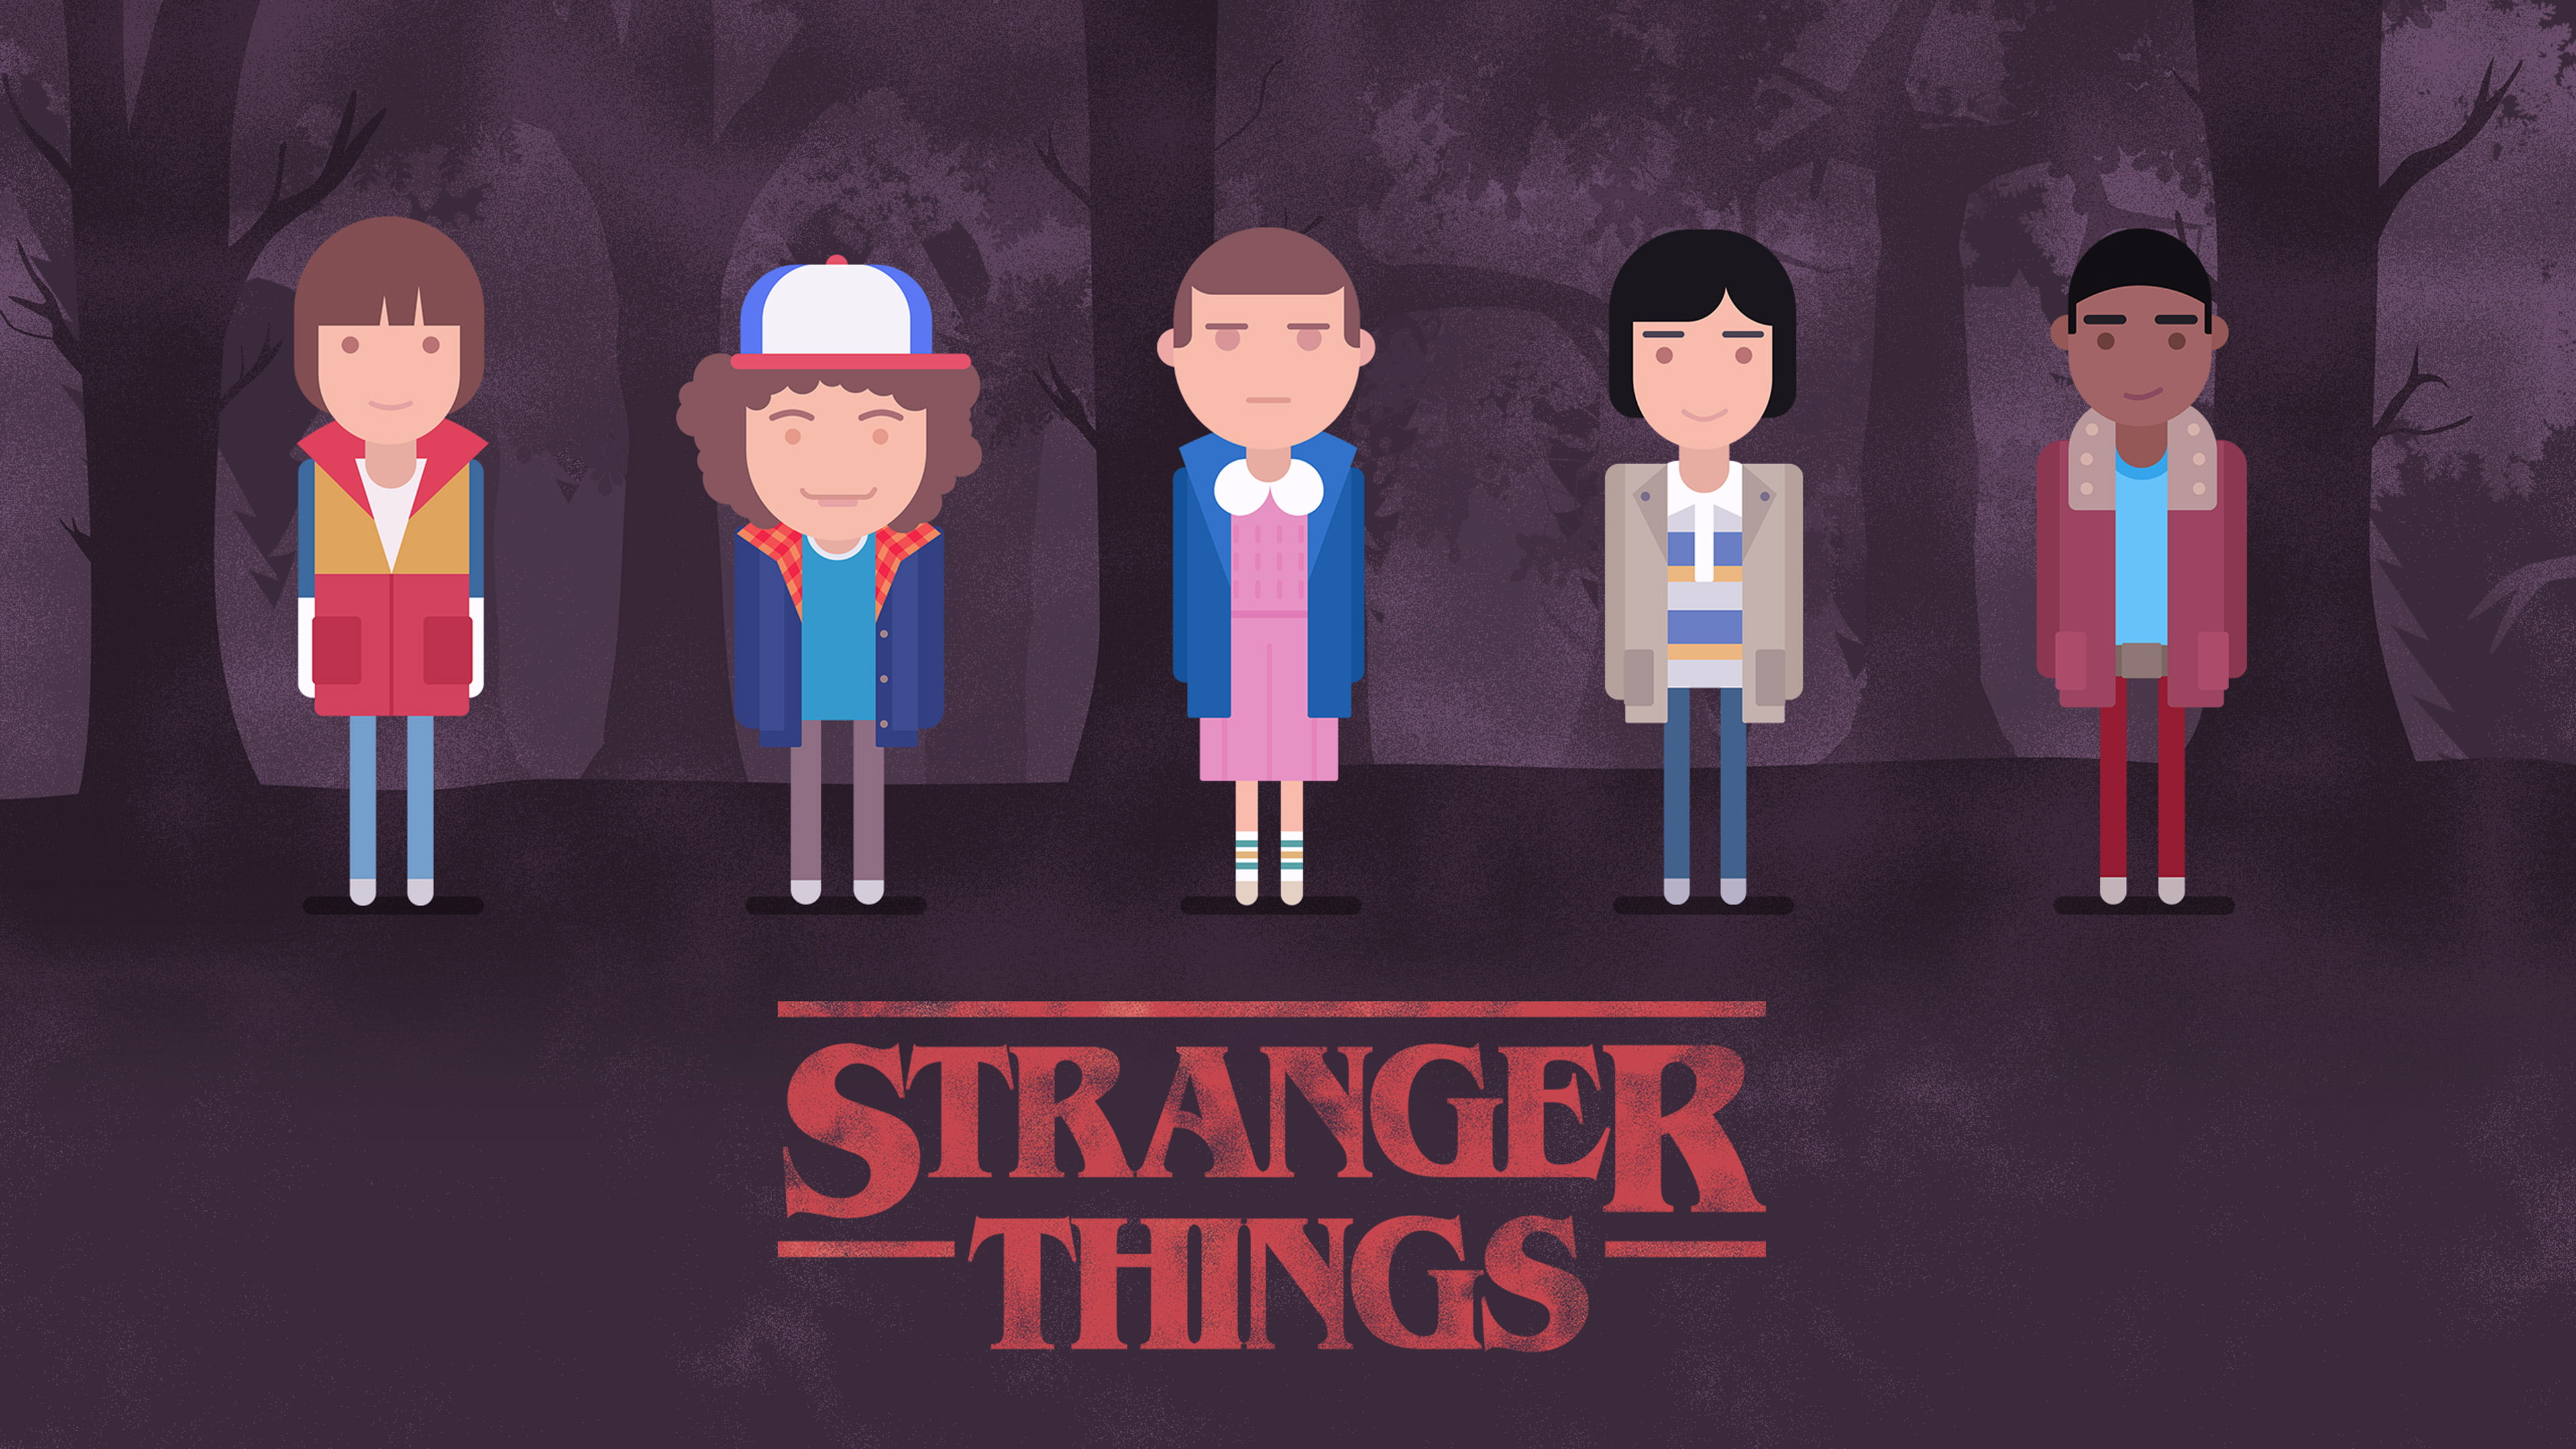 stranger things wallpaper hd